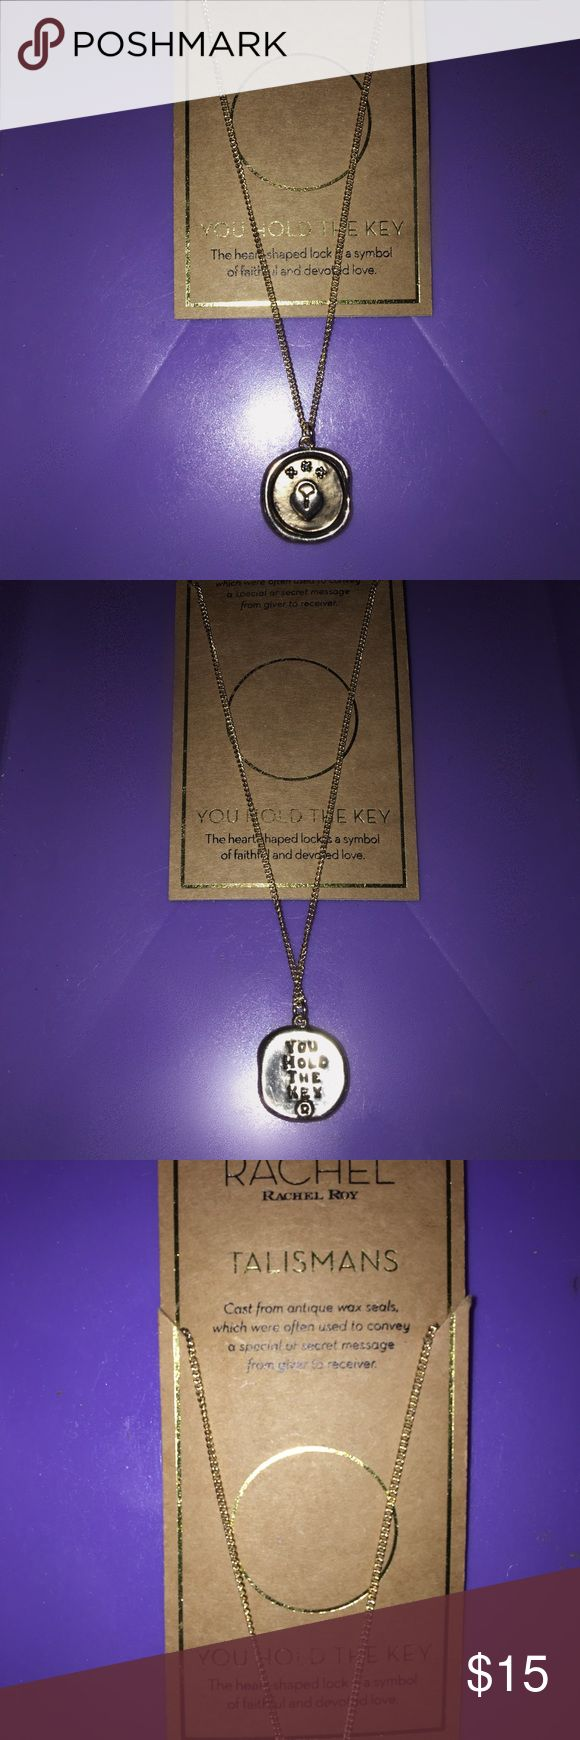 NWT Rachel Roy Love Talisman Necklace Cast from antique wax seals, which were often used to convey a special or secret message from giver to receiver.  You Hold the Key This heart-shaped locket is a symbol of faithful and devoted love. Rachel Roy Jewelry Necklaces